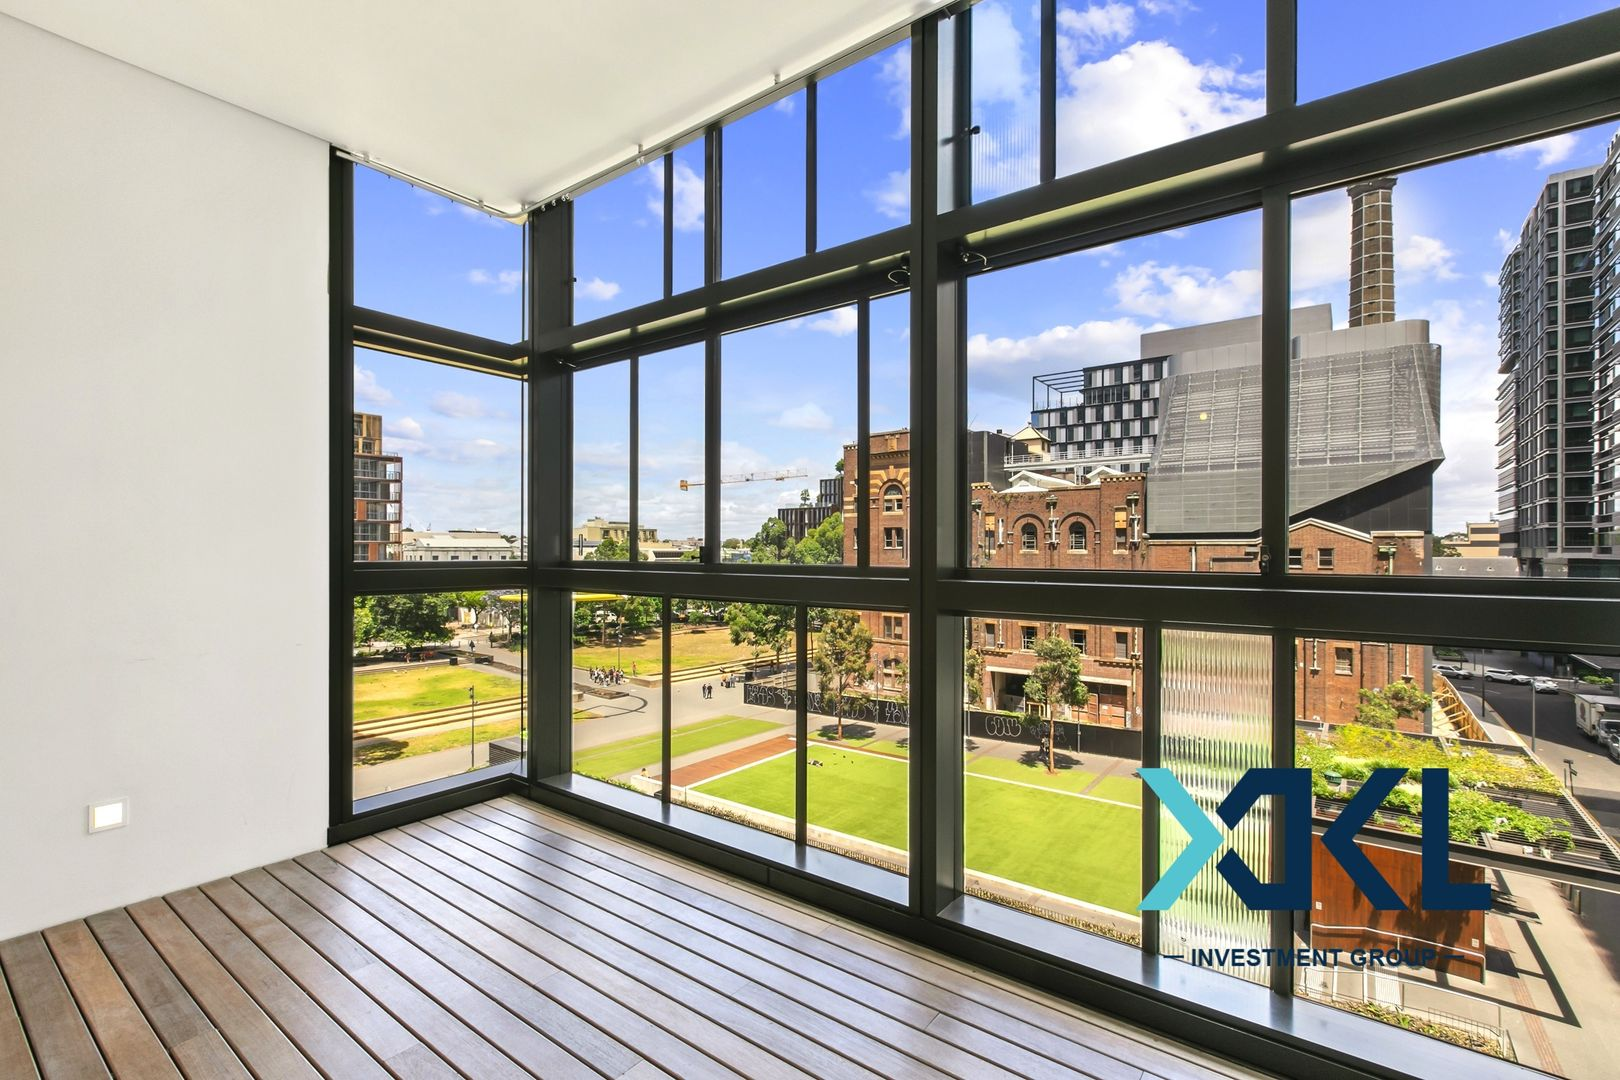 2 bedrooms Apartment / Unit / Flat in Lv4/1 Park Lane CHIPPENDALE NSW, 2008